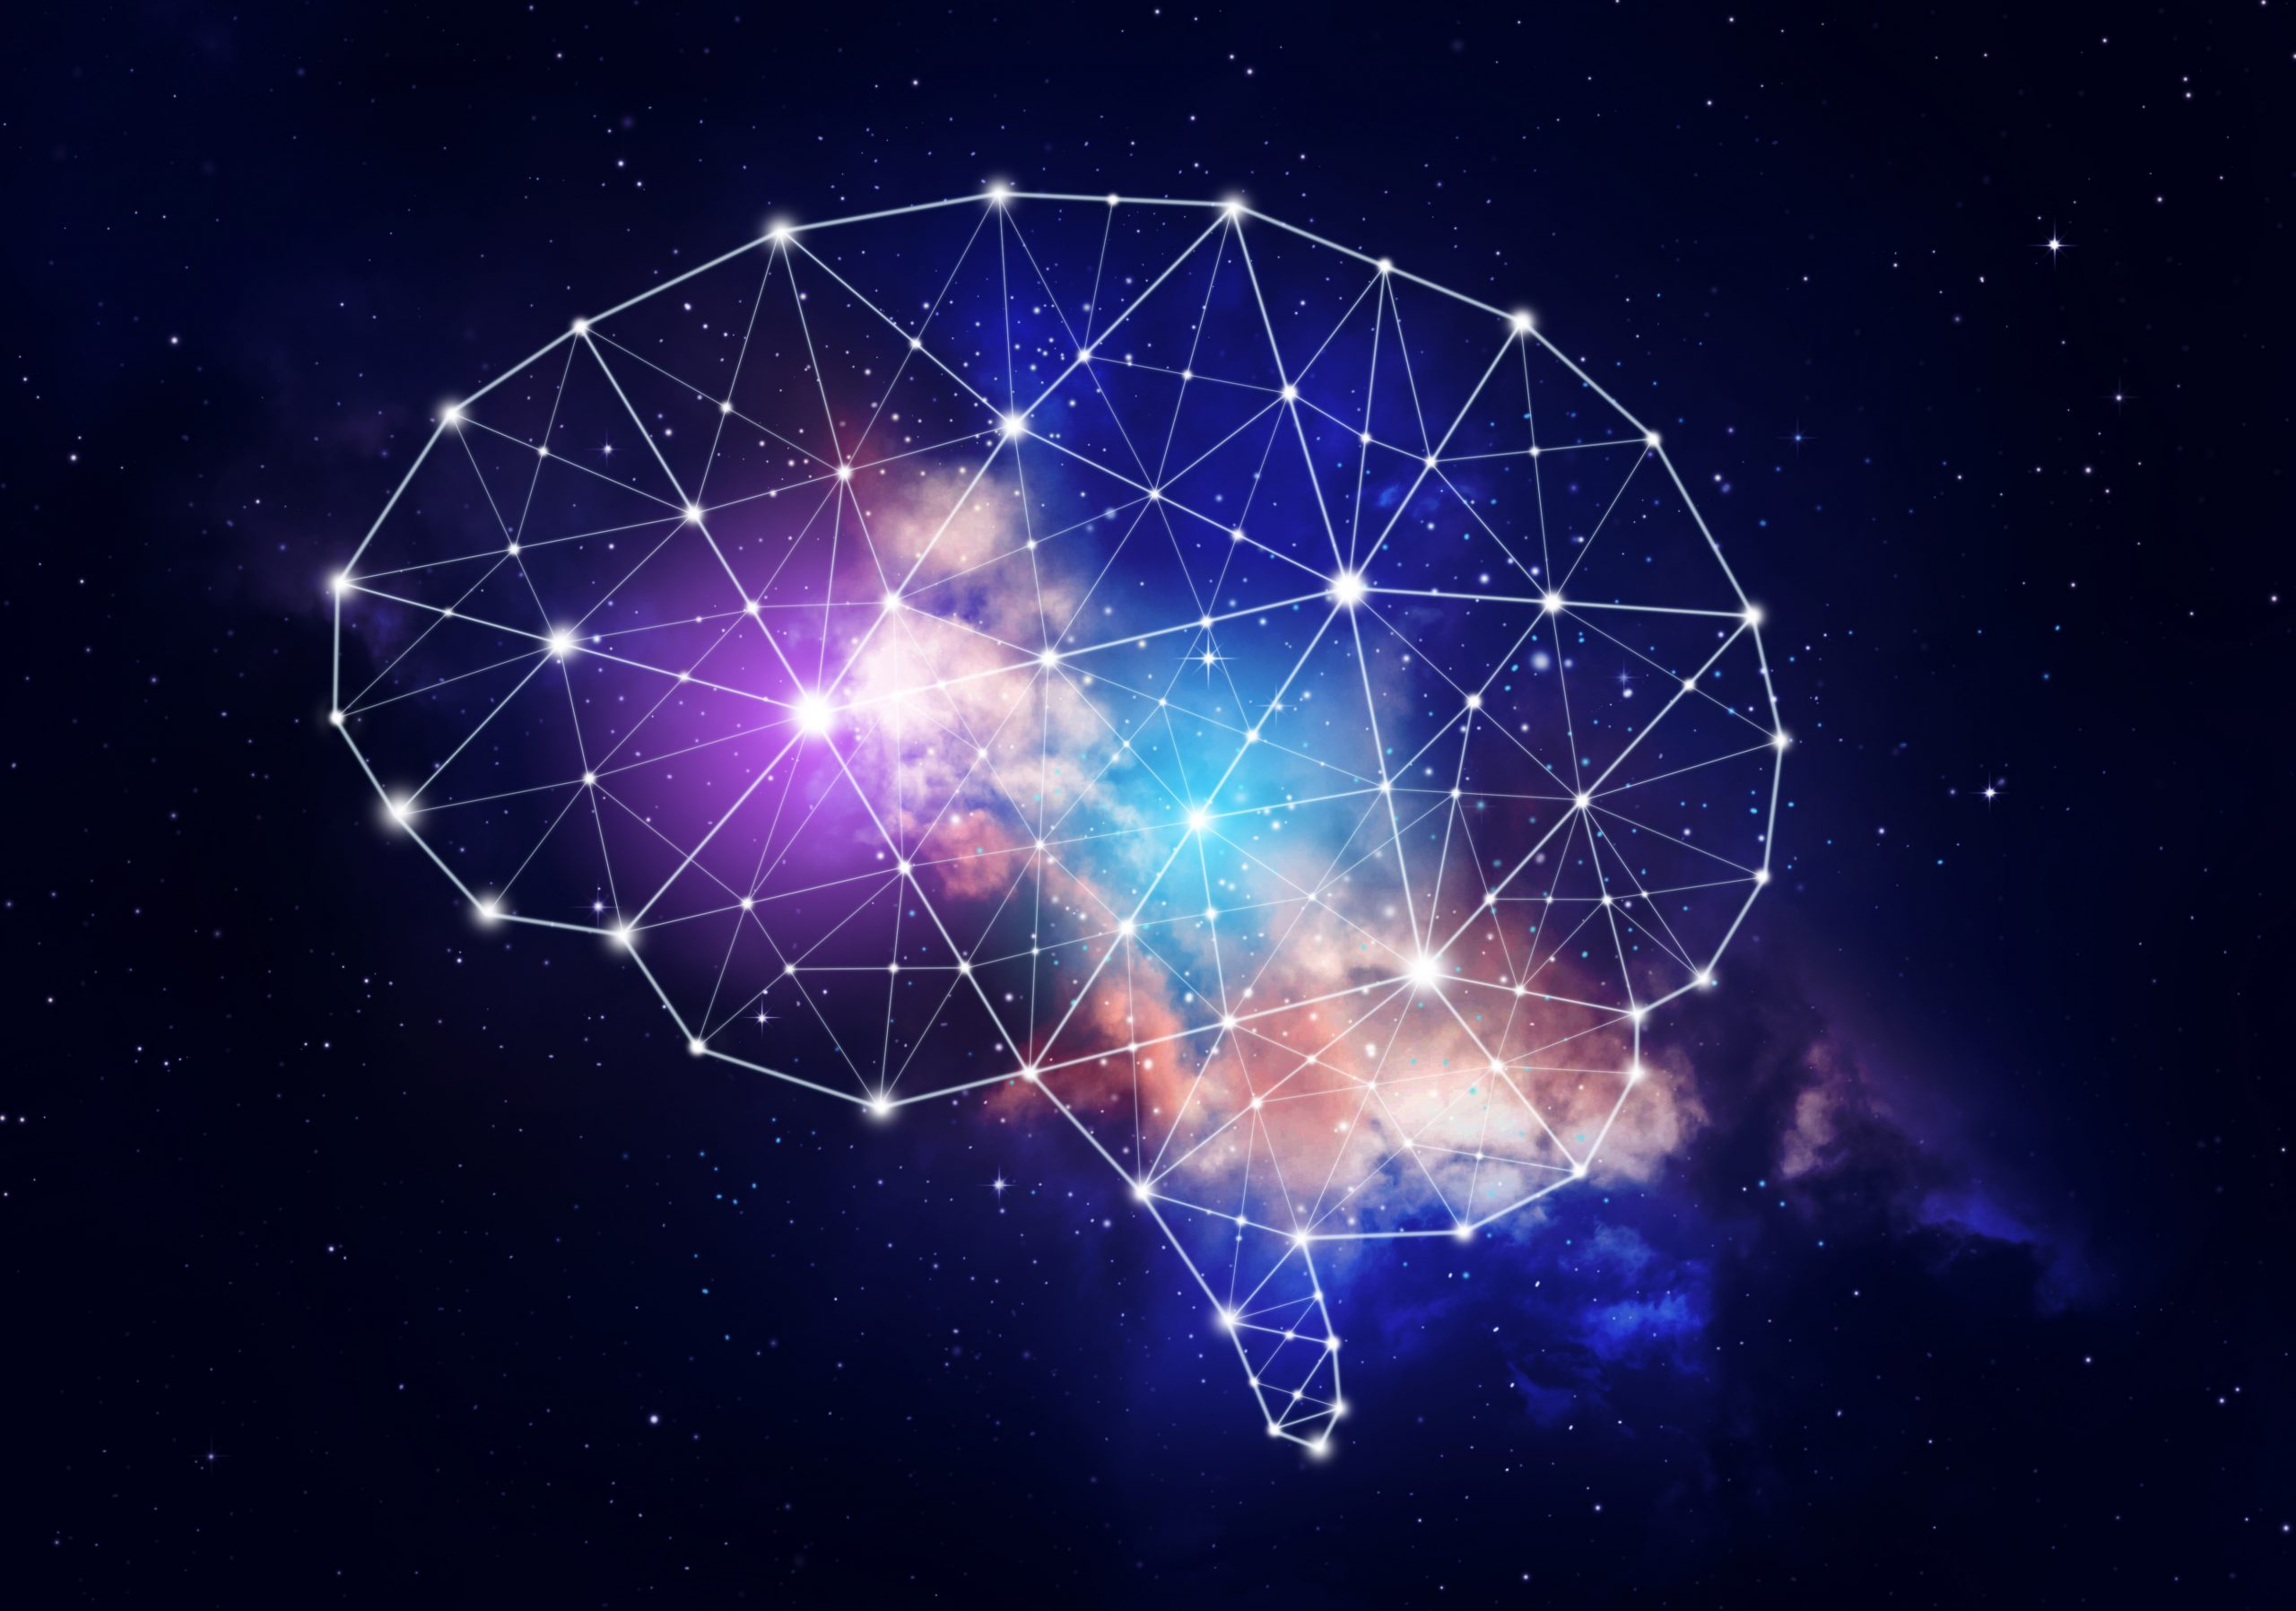 Is the human brain a model of the universe?